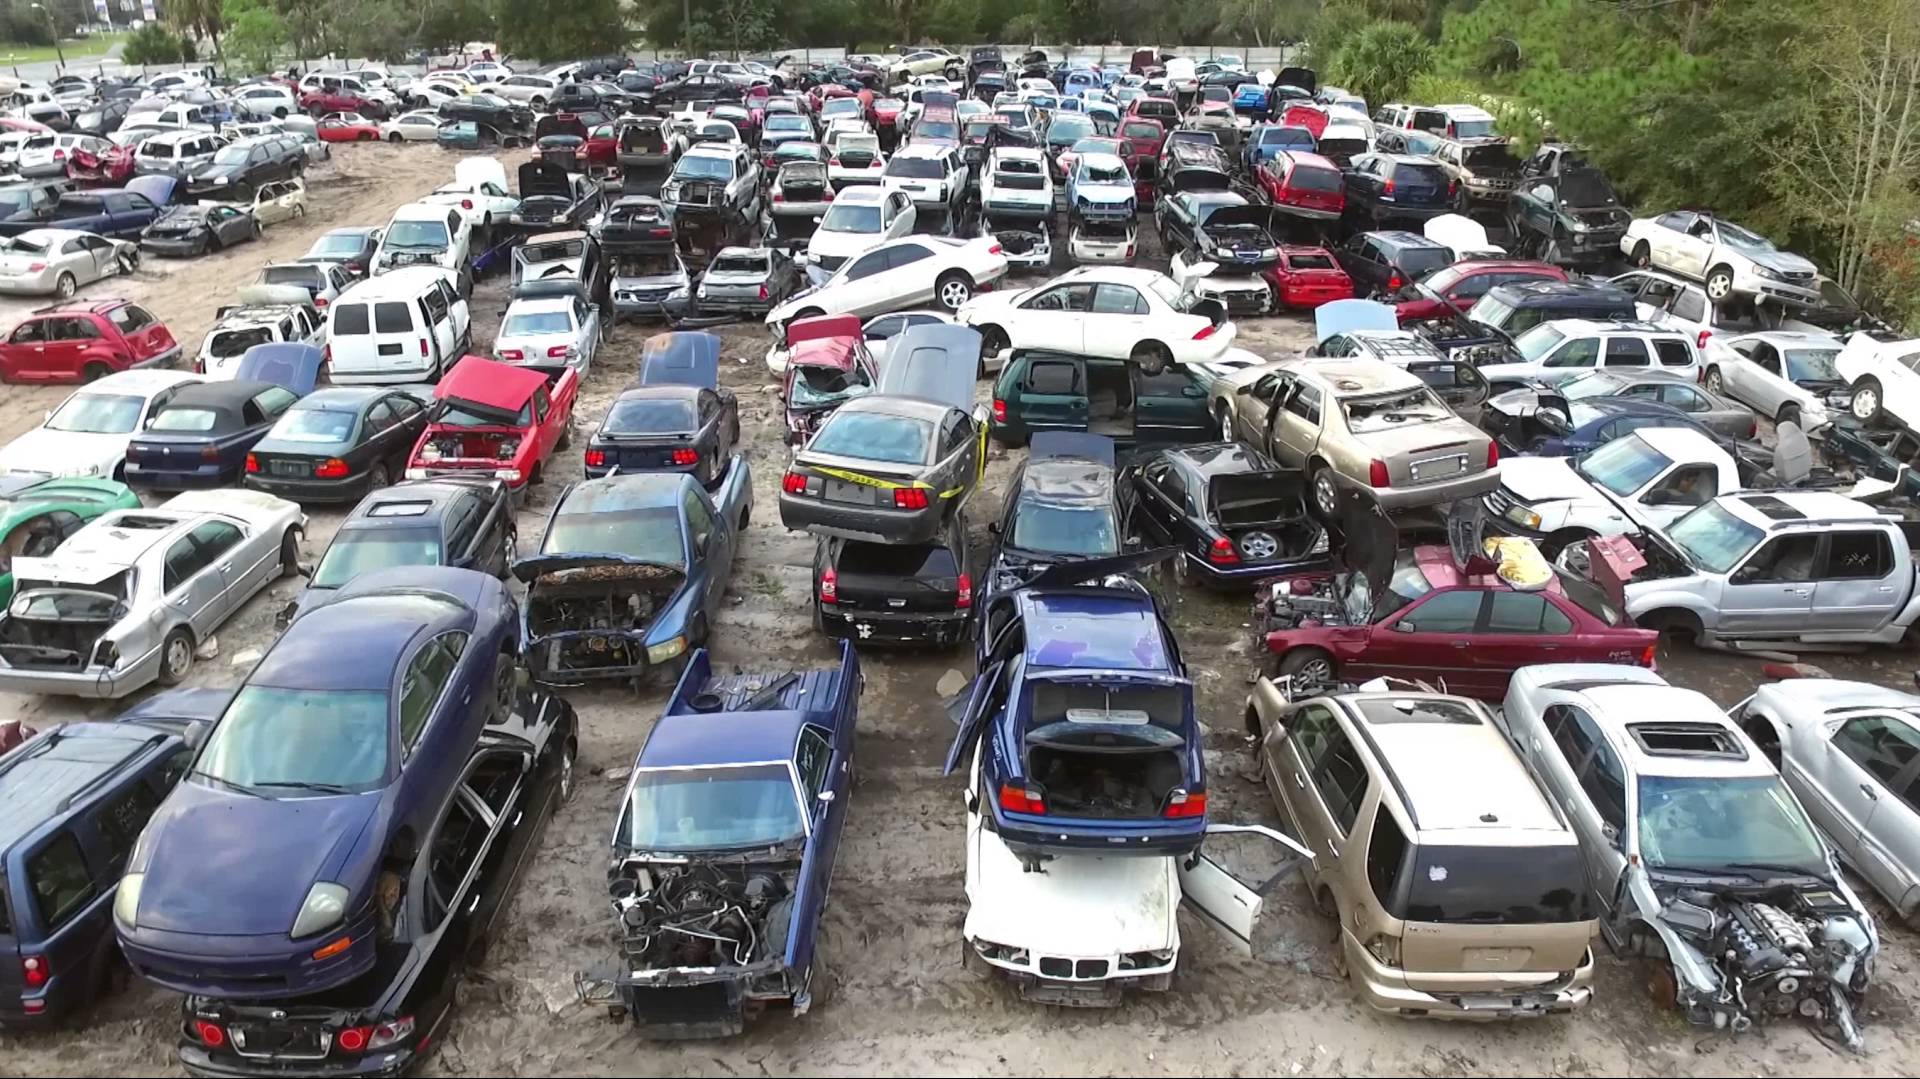 orlando junkyard used auto parts fl visual inventory online helicopter